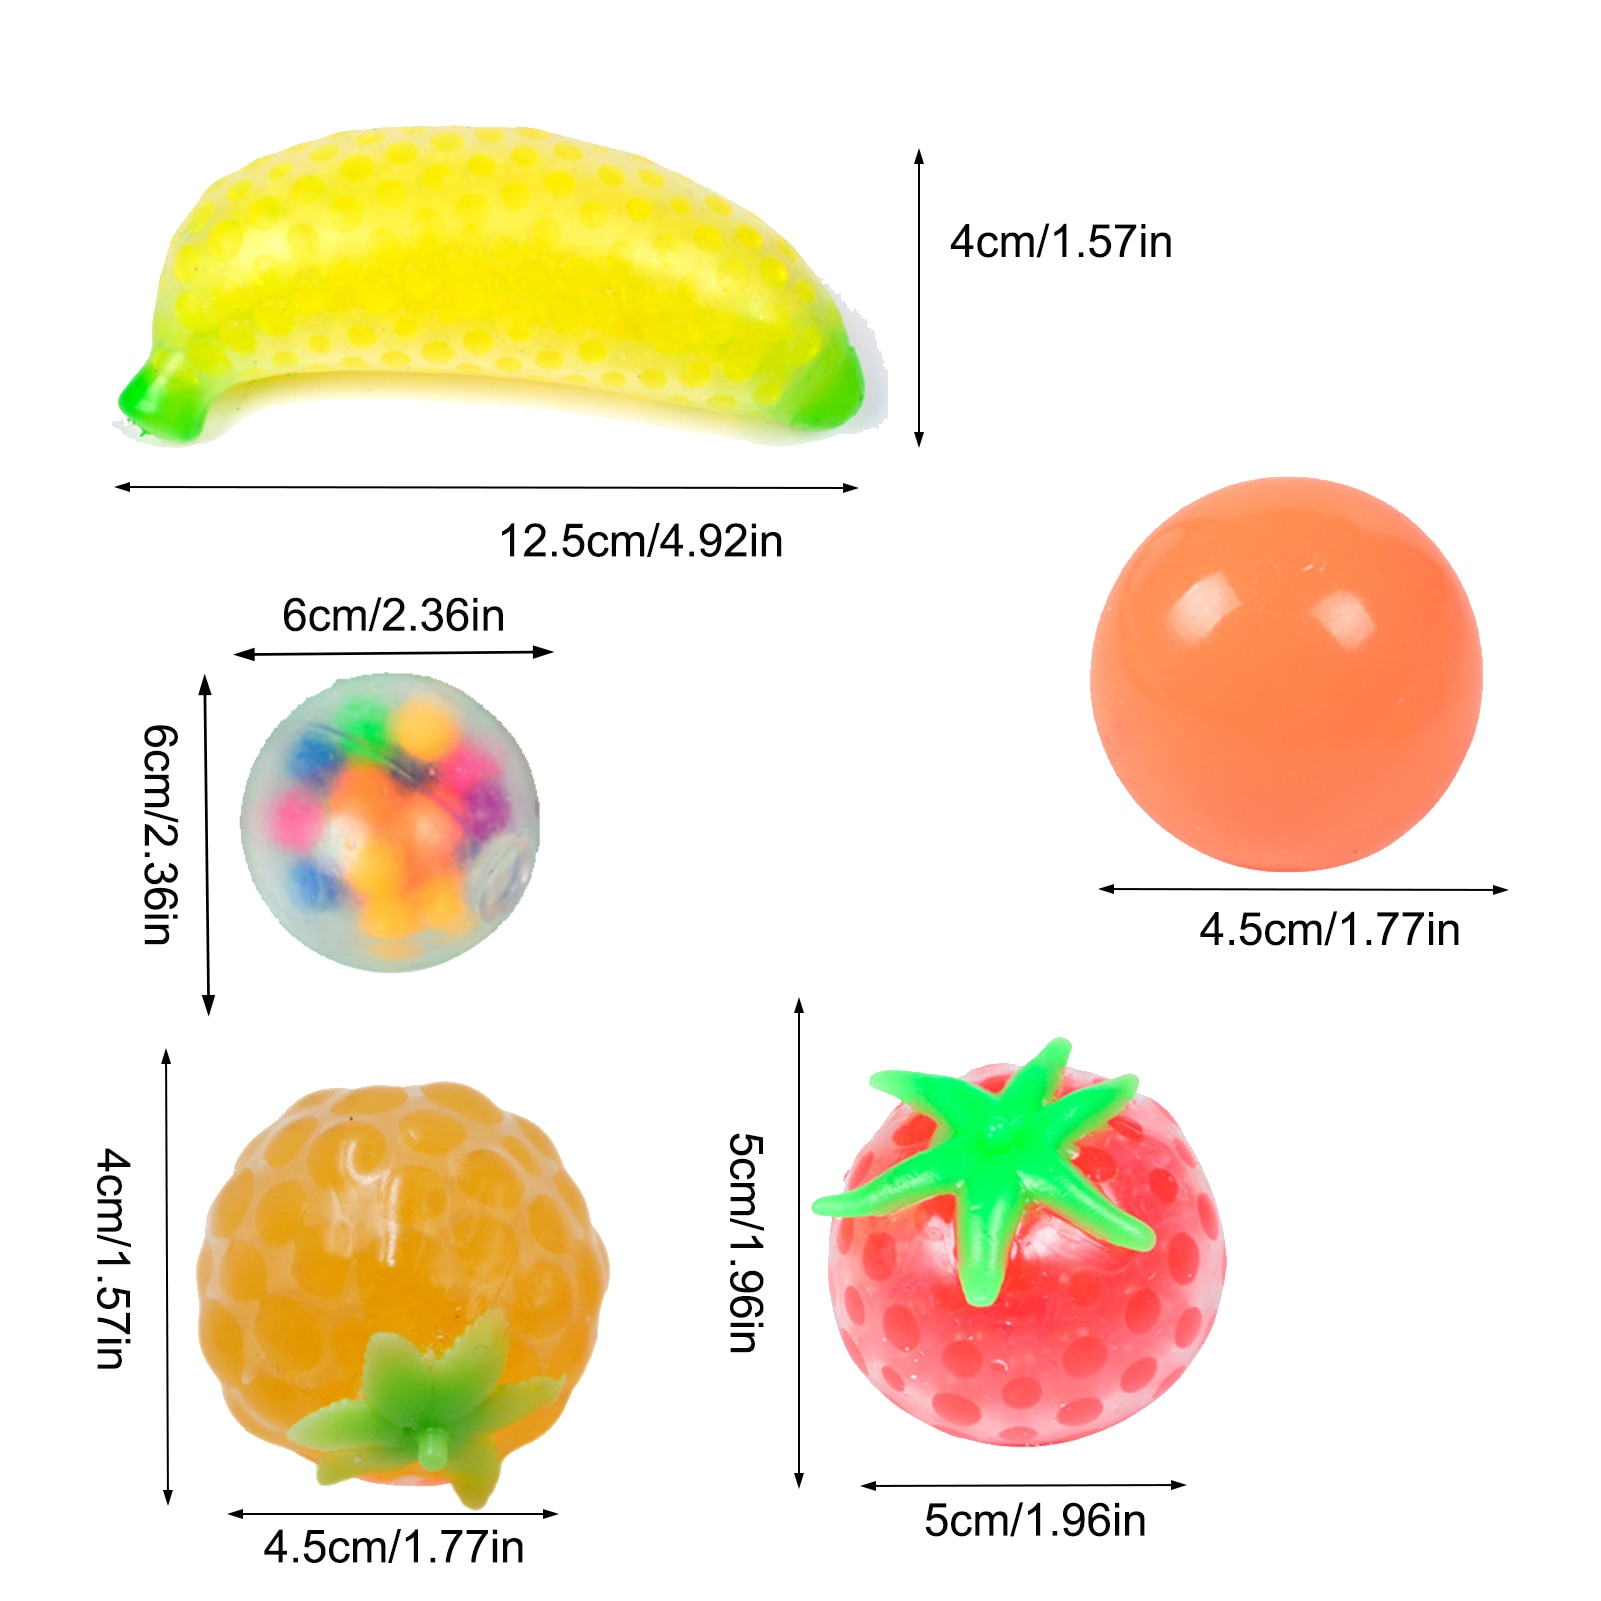 9pcs Fun Soft Fruit Anti Stress Ball Stress Reliever Toy For Kids Adult Anxiety Stress Relief Fidget Decompression Sensory Toy enlarge